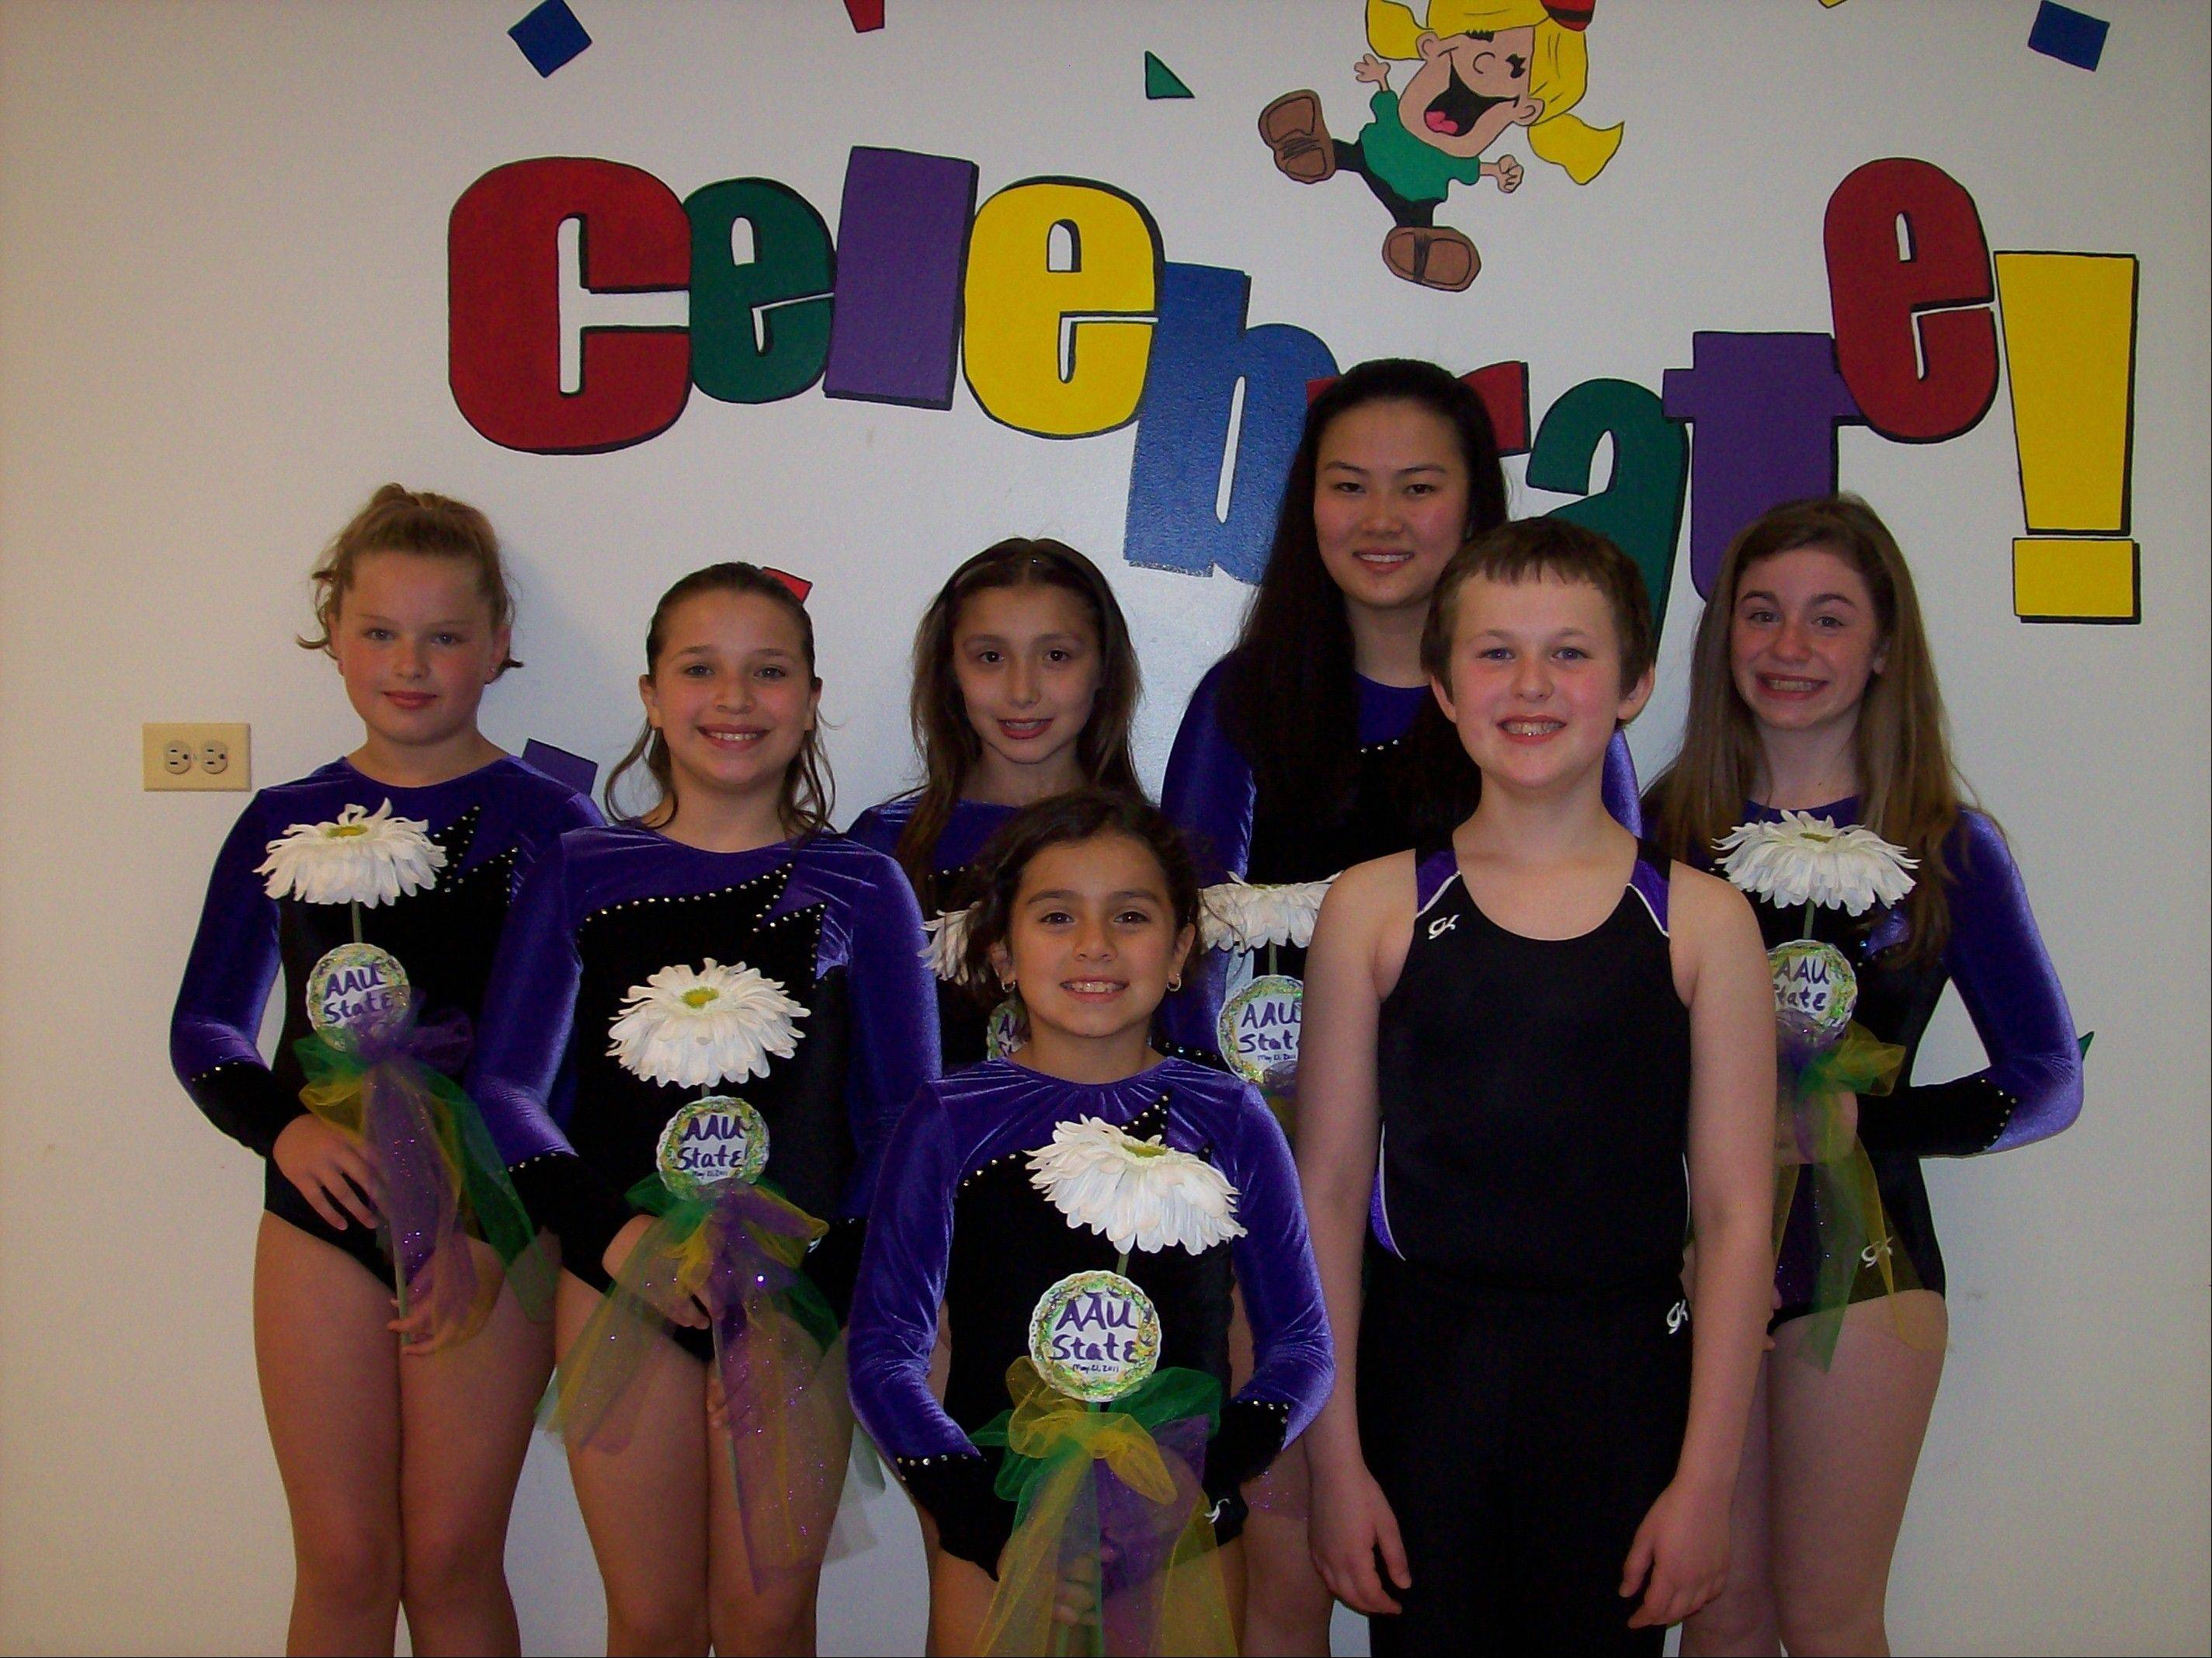 Members of the Trampoline and Tumbling team from Ultimate Gymnastics of Gurnee are celebrating success after the recent AAU State meet, held in Chatham. Back row, from left: Holly Merlock, Amanda Stautz, Lucy Tarcha, Karis Kovacs and Gina Bernardini; front row: Shannon McDermott and Paul Coleman. All will be traveling to New Orleans to compete in the Junior Olympics at the end of July.